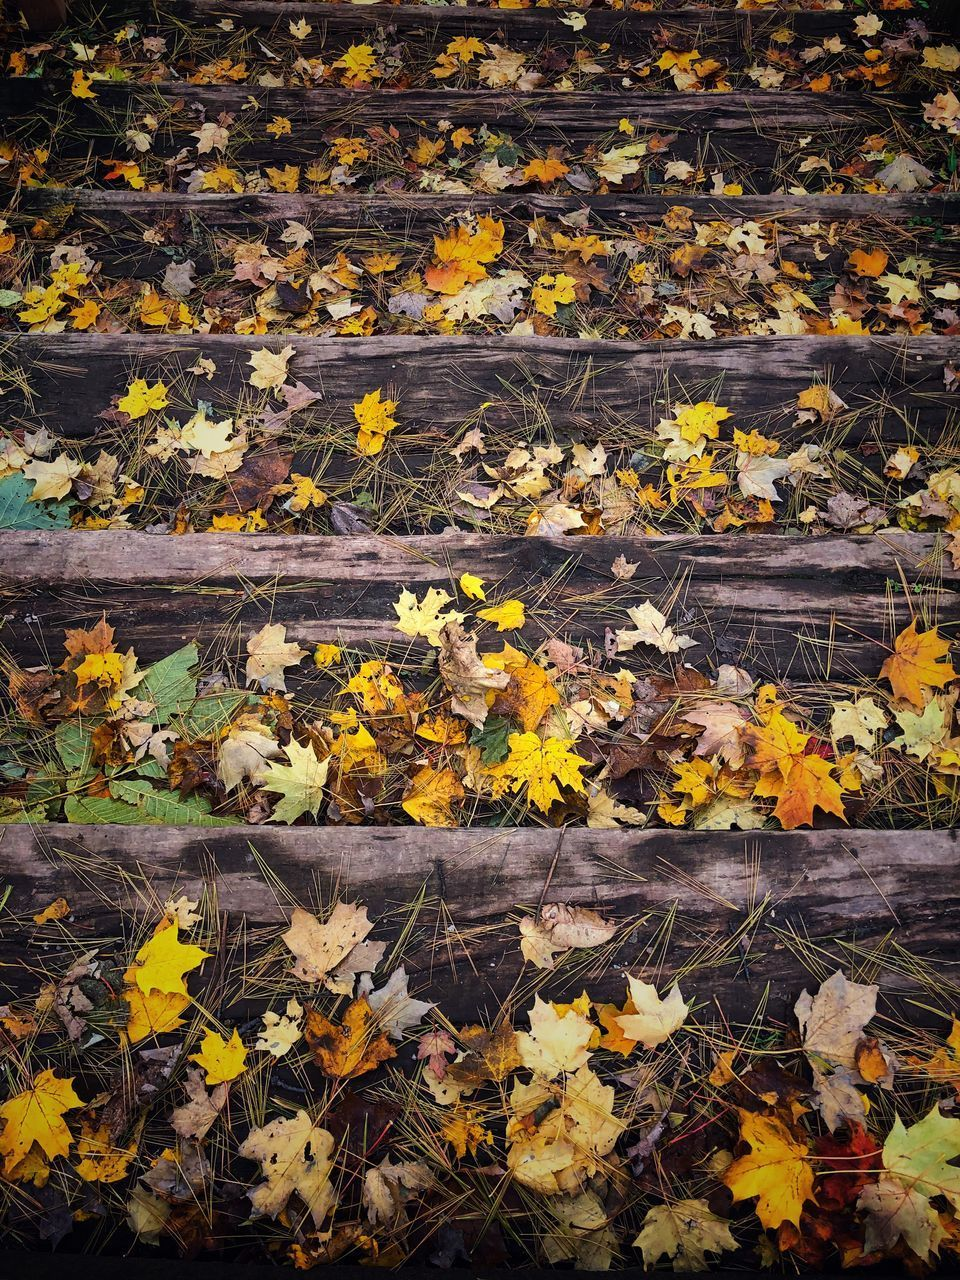 leaf, plant part, plant, yellow, autumn, beauty in nature, nature, day, no people, flower, change, vulnerability, flowering plant, fragility, high angle view, falling, full frame, leaves, outdoors, freshness, maple leaf, autumn collection, messy, natural condition